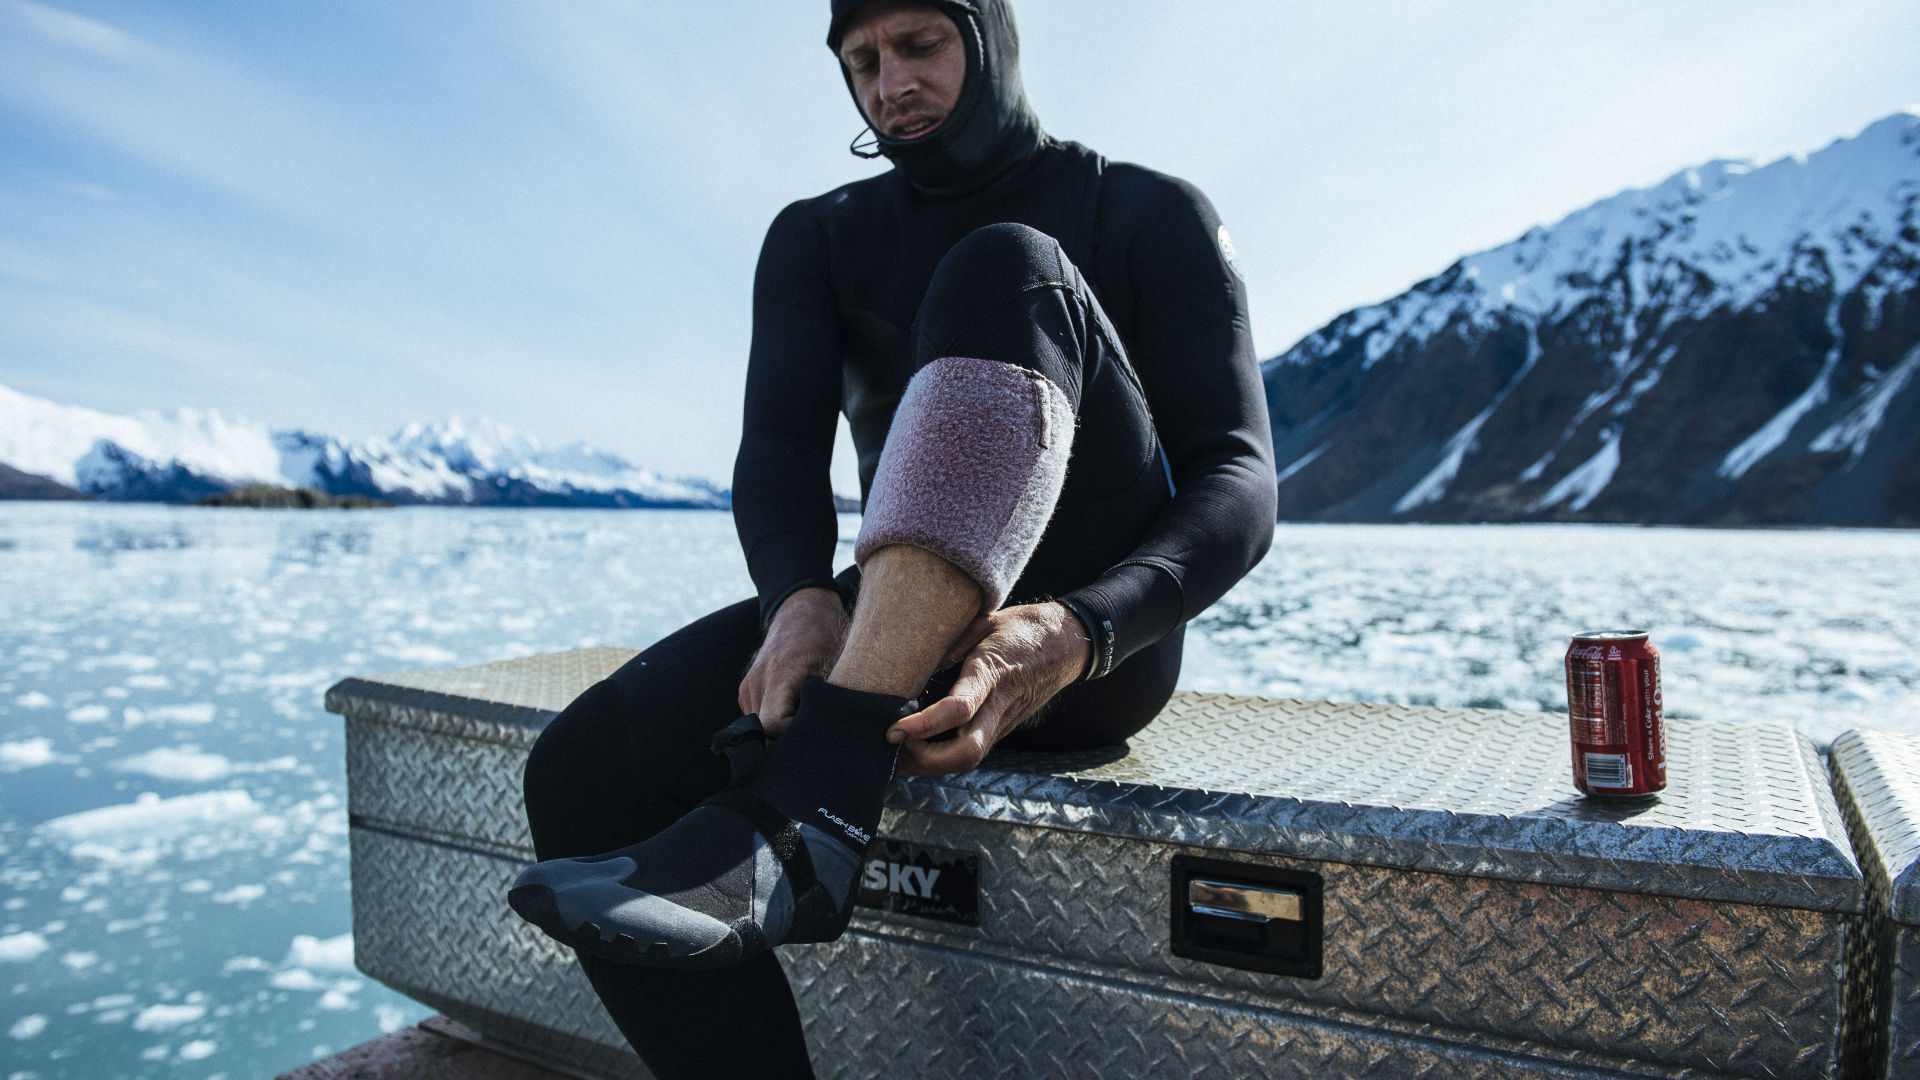 Professional surfer Mick Fanning putting on surf booties in Alaska